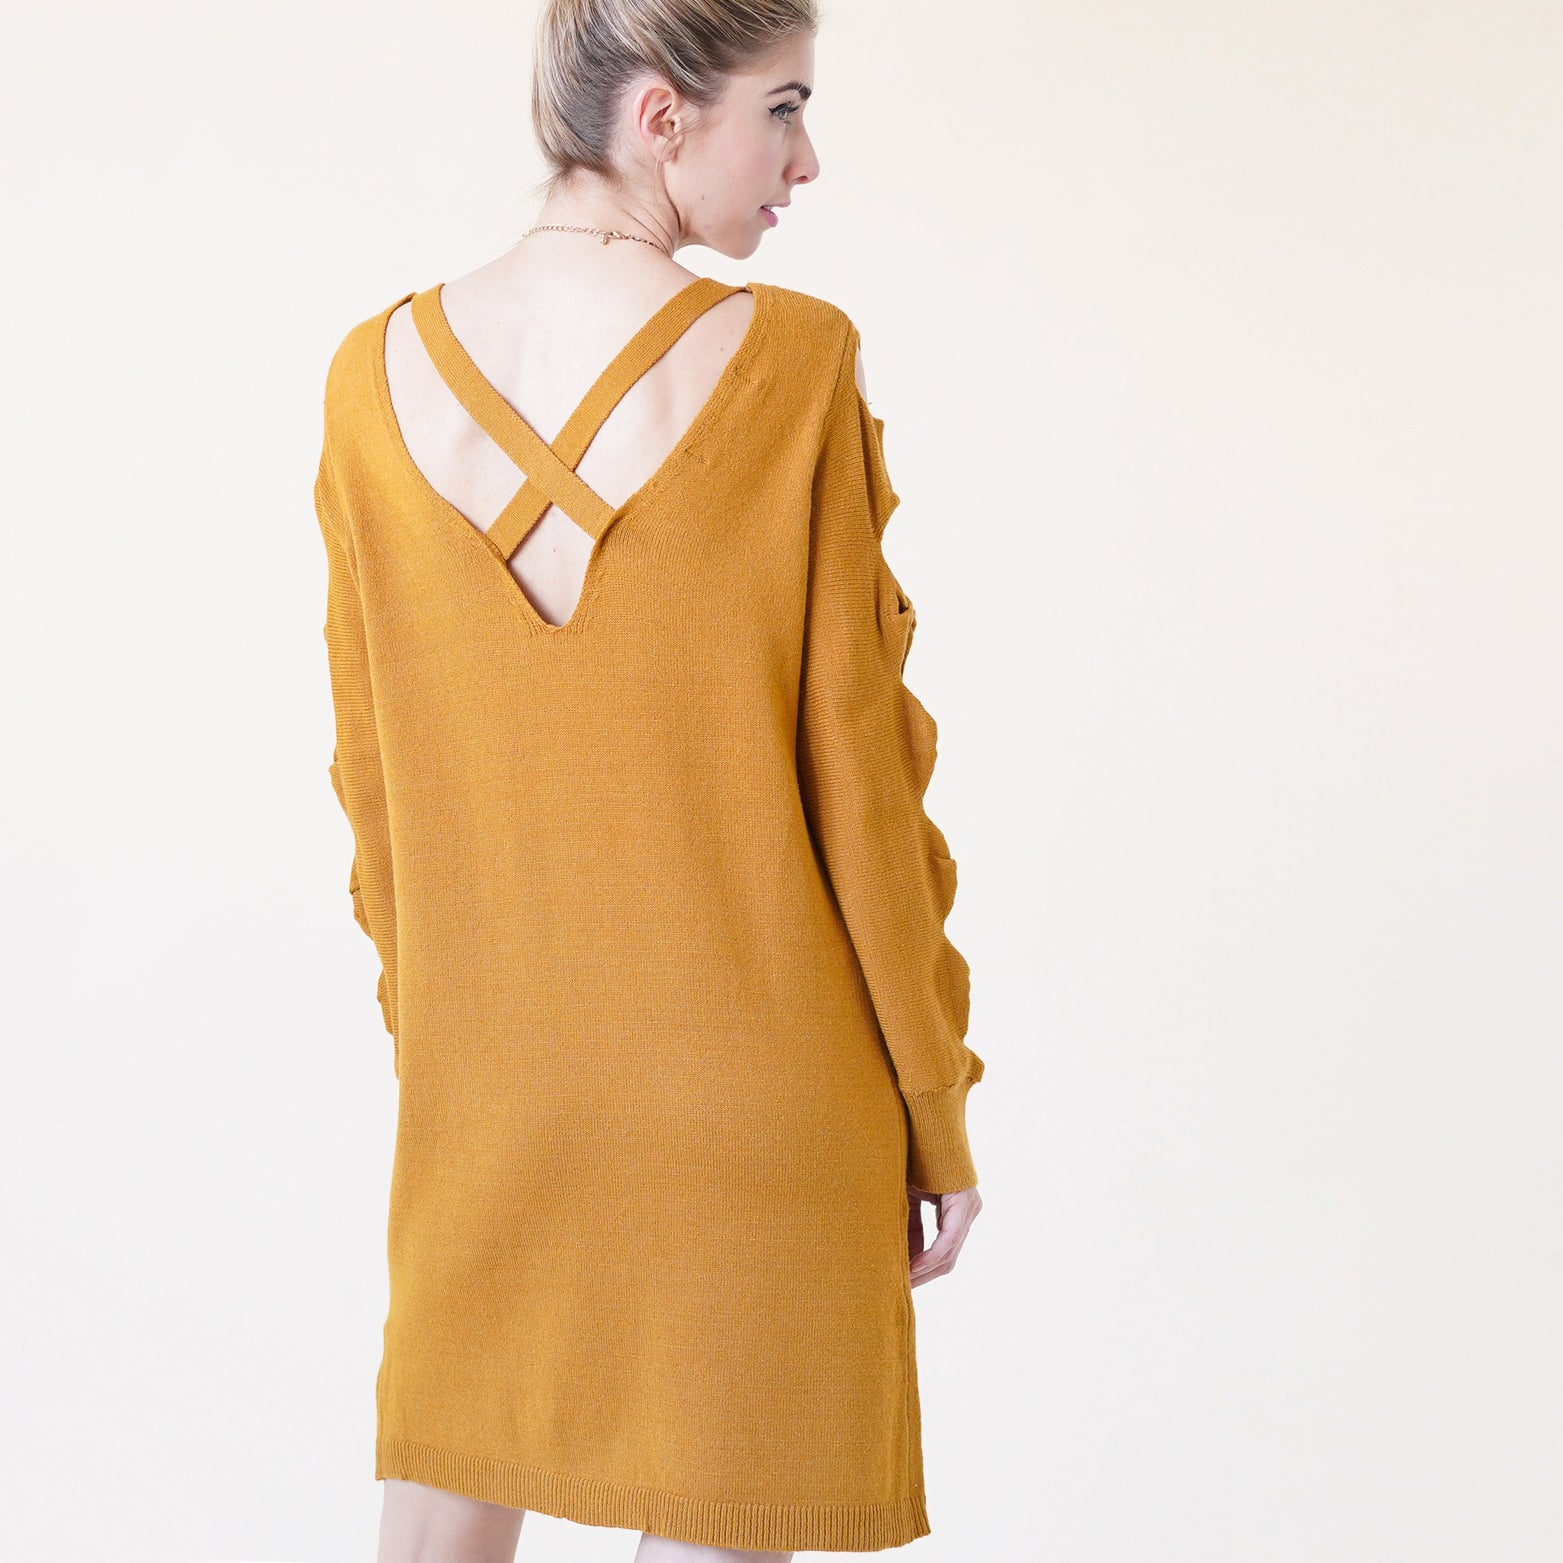 Not Your Classic Sweater Dress